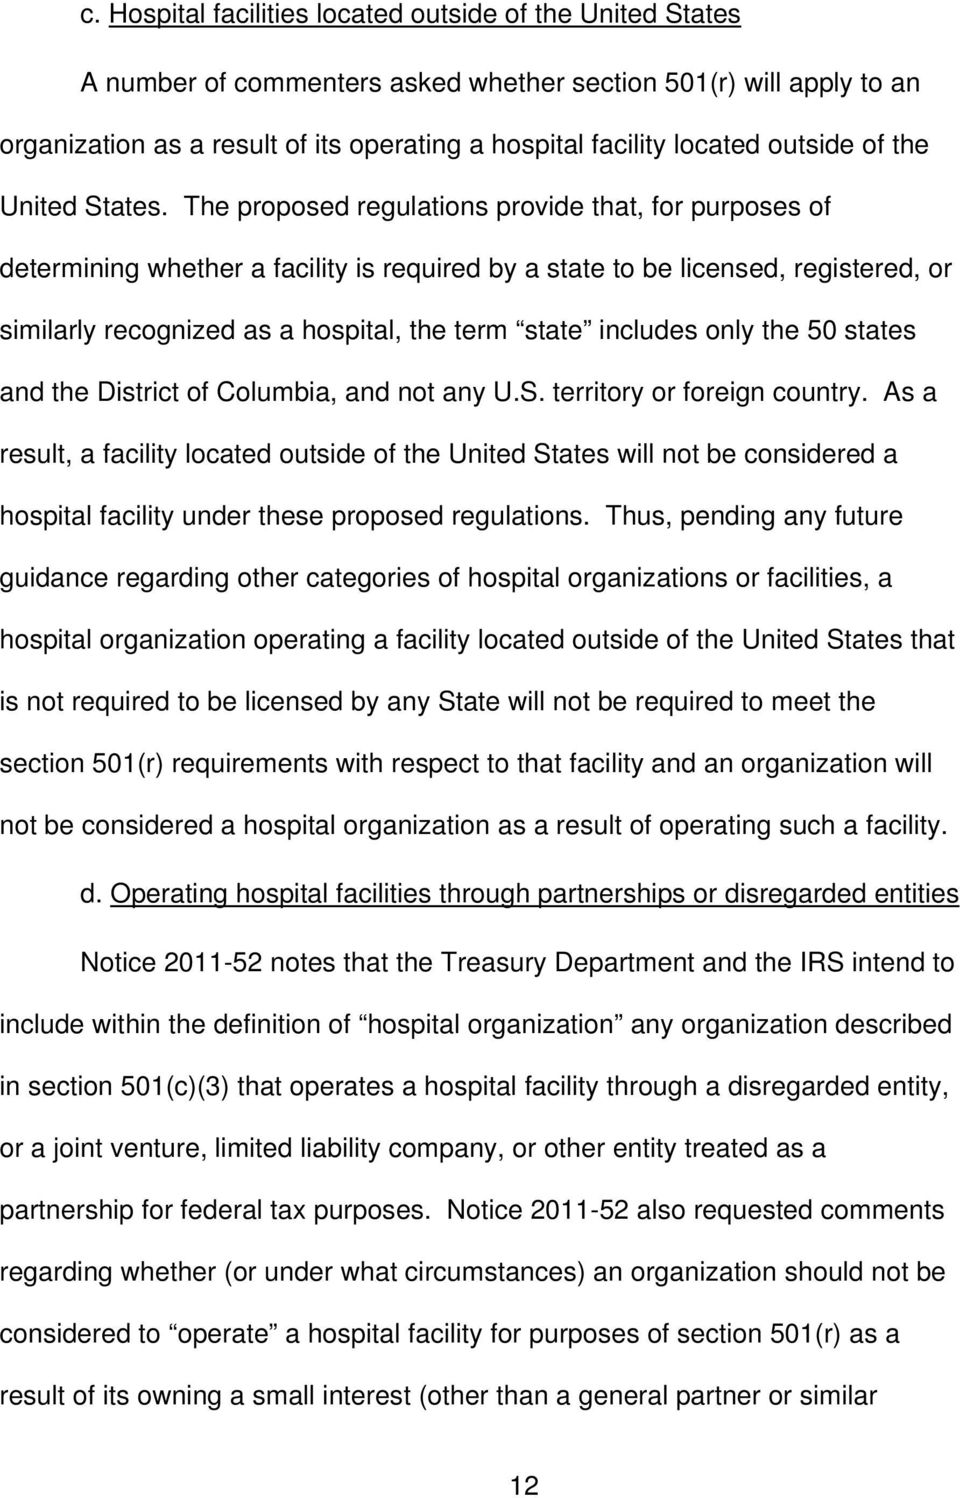 The proposed regulations provide that, for purposes of determining whether a facility is required by a state to be licensed, registered, or similarly recognized as a hospital, the term state includes